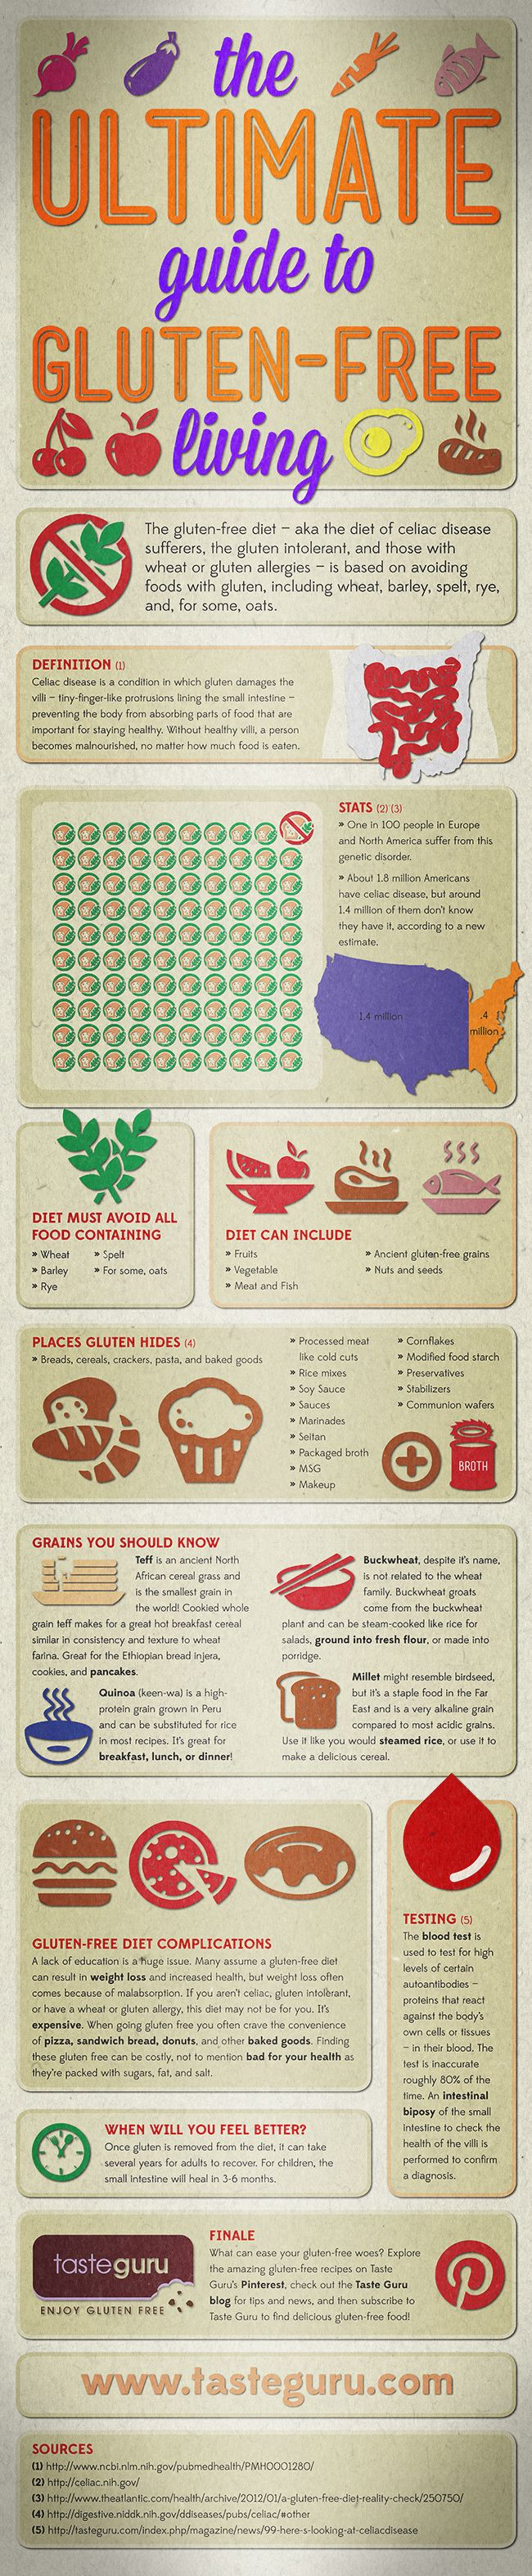 The Ultimate Guide to Gluten-Free Living | NutriLiving